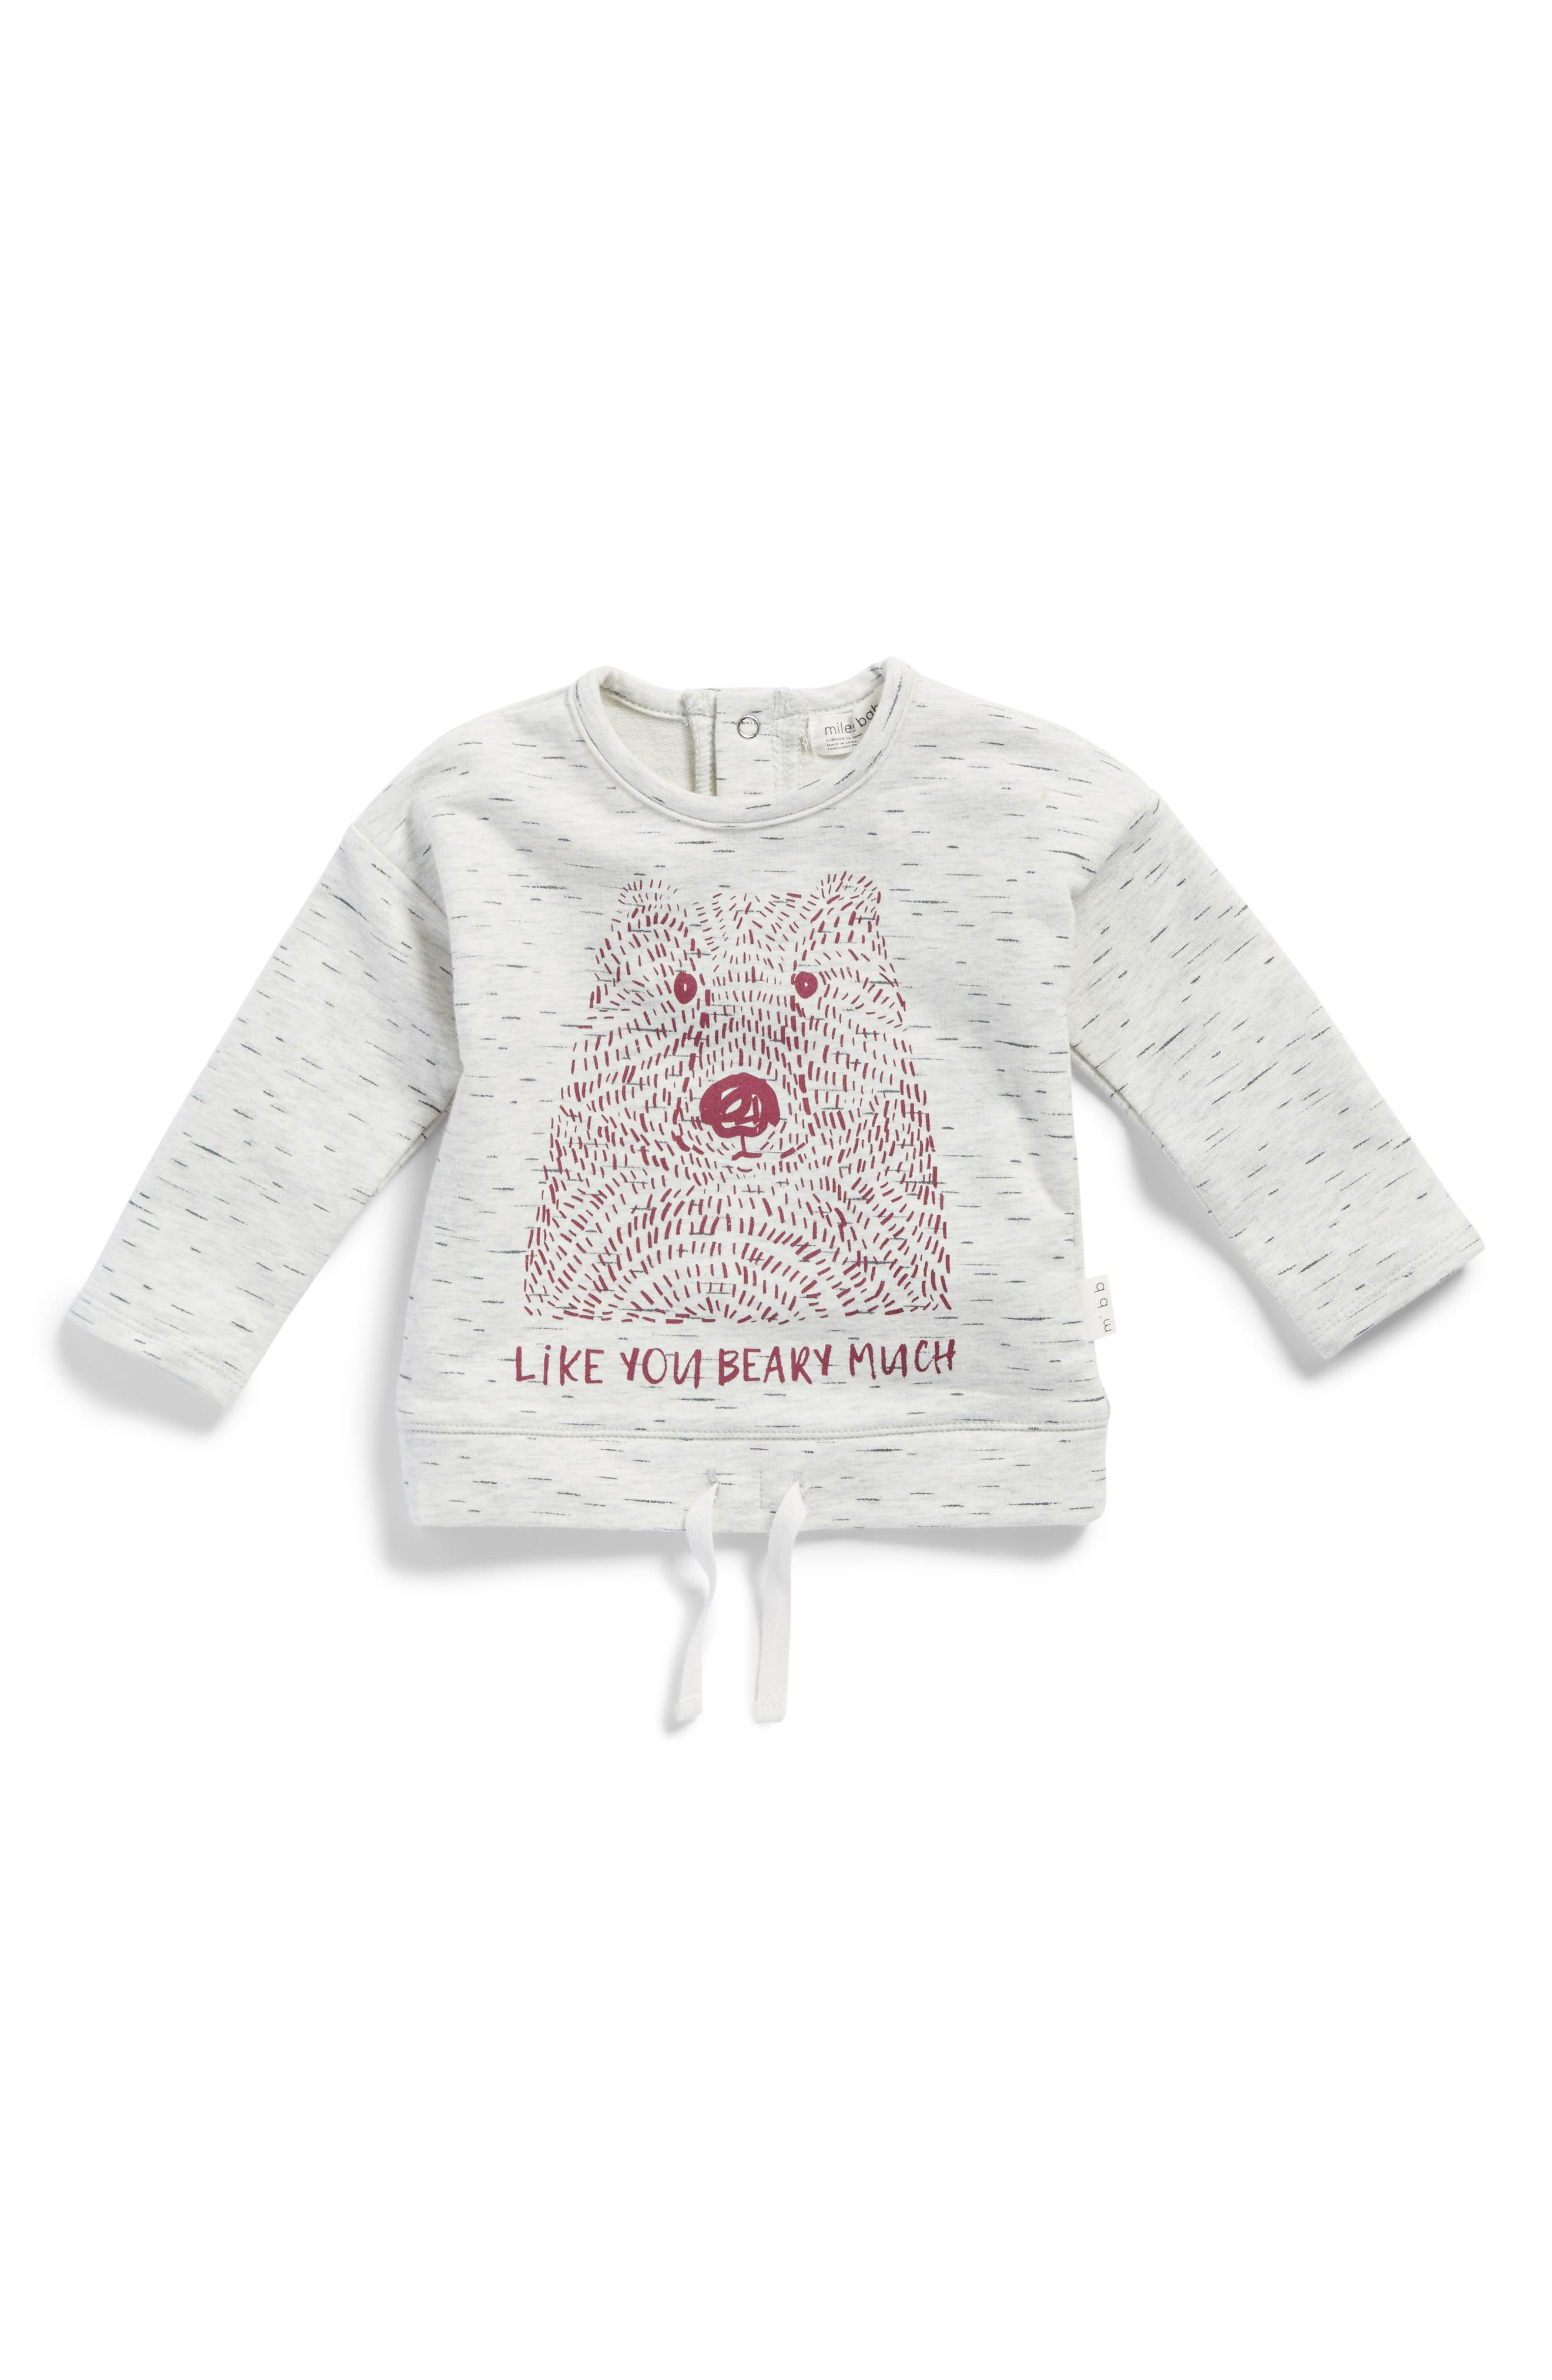 Main Image - Miles Baby Like You Beary Much Graphic Tee (Baby Girls)